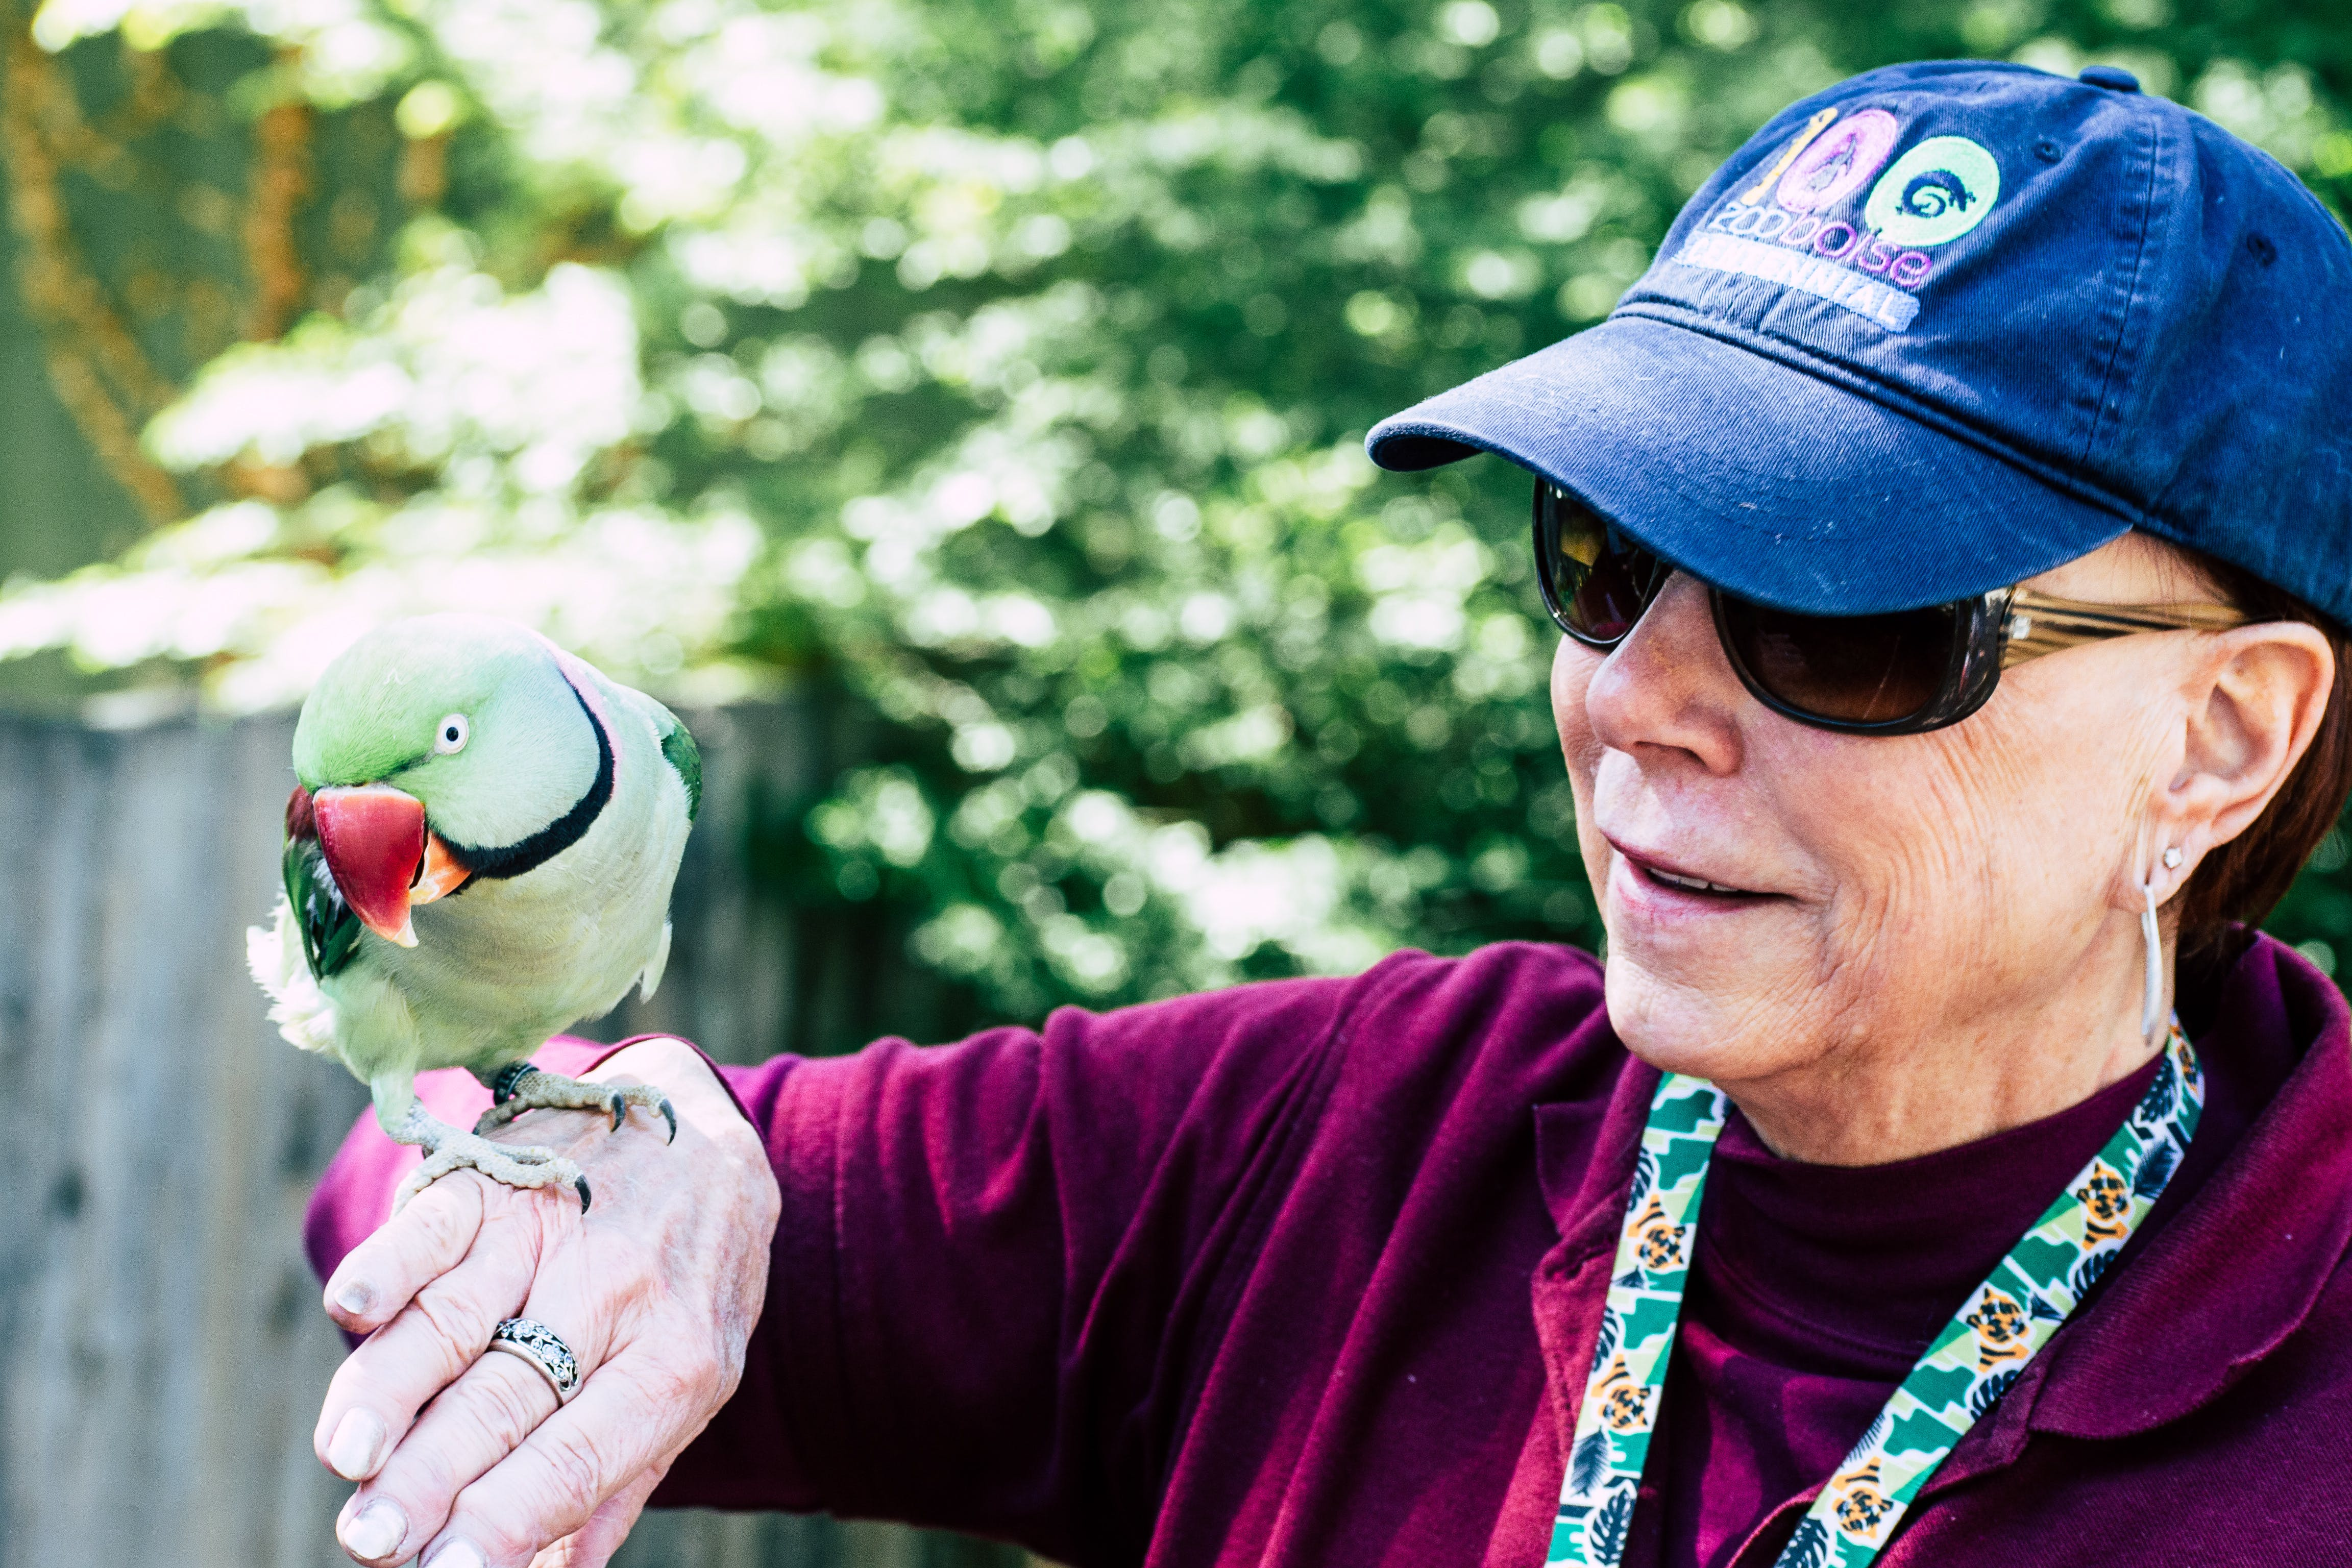 Woman Wearing Maroon Sweater and Blue Cap Raising Her Right Hand While Rose-ringed Parrot Perching on It